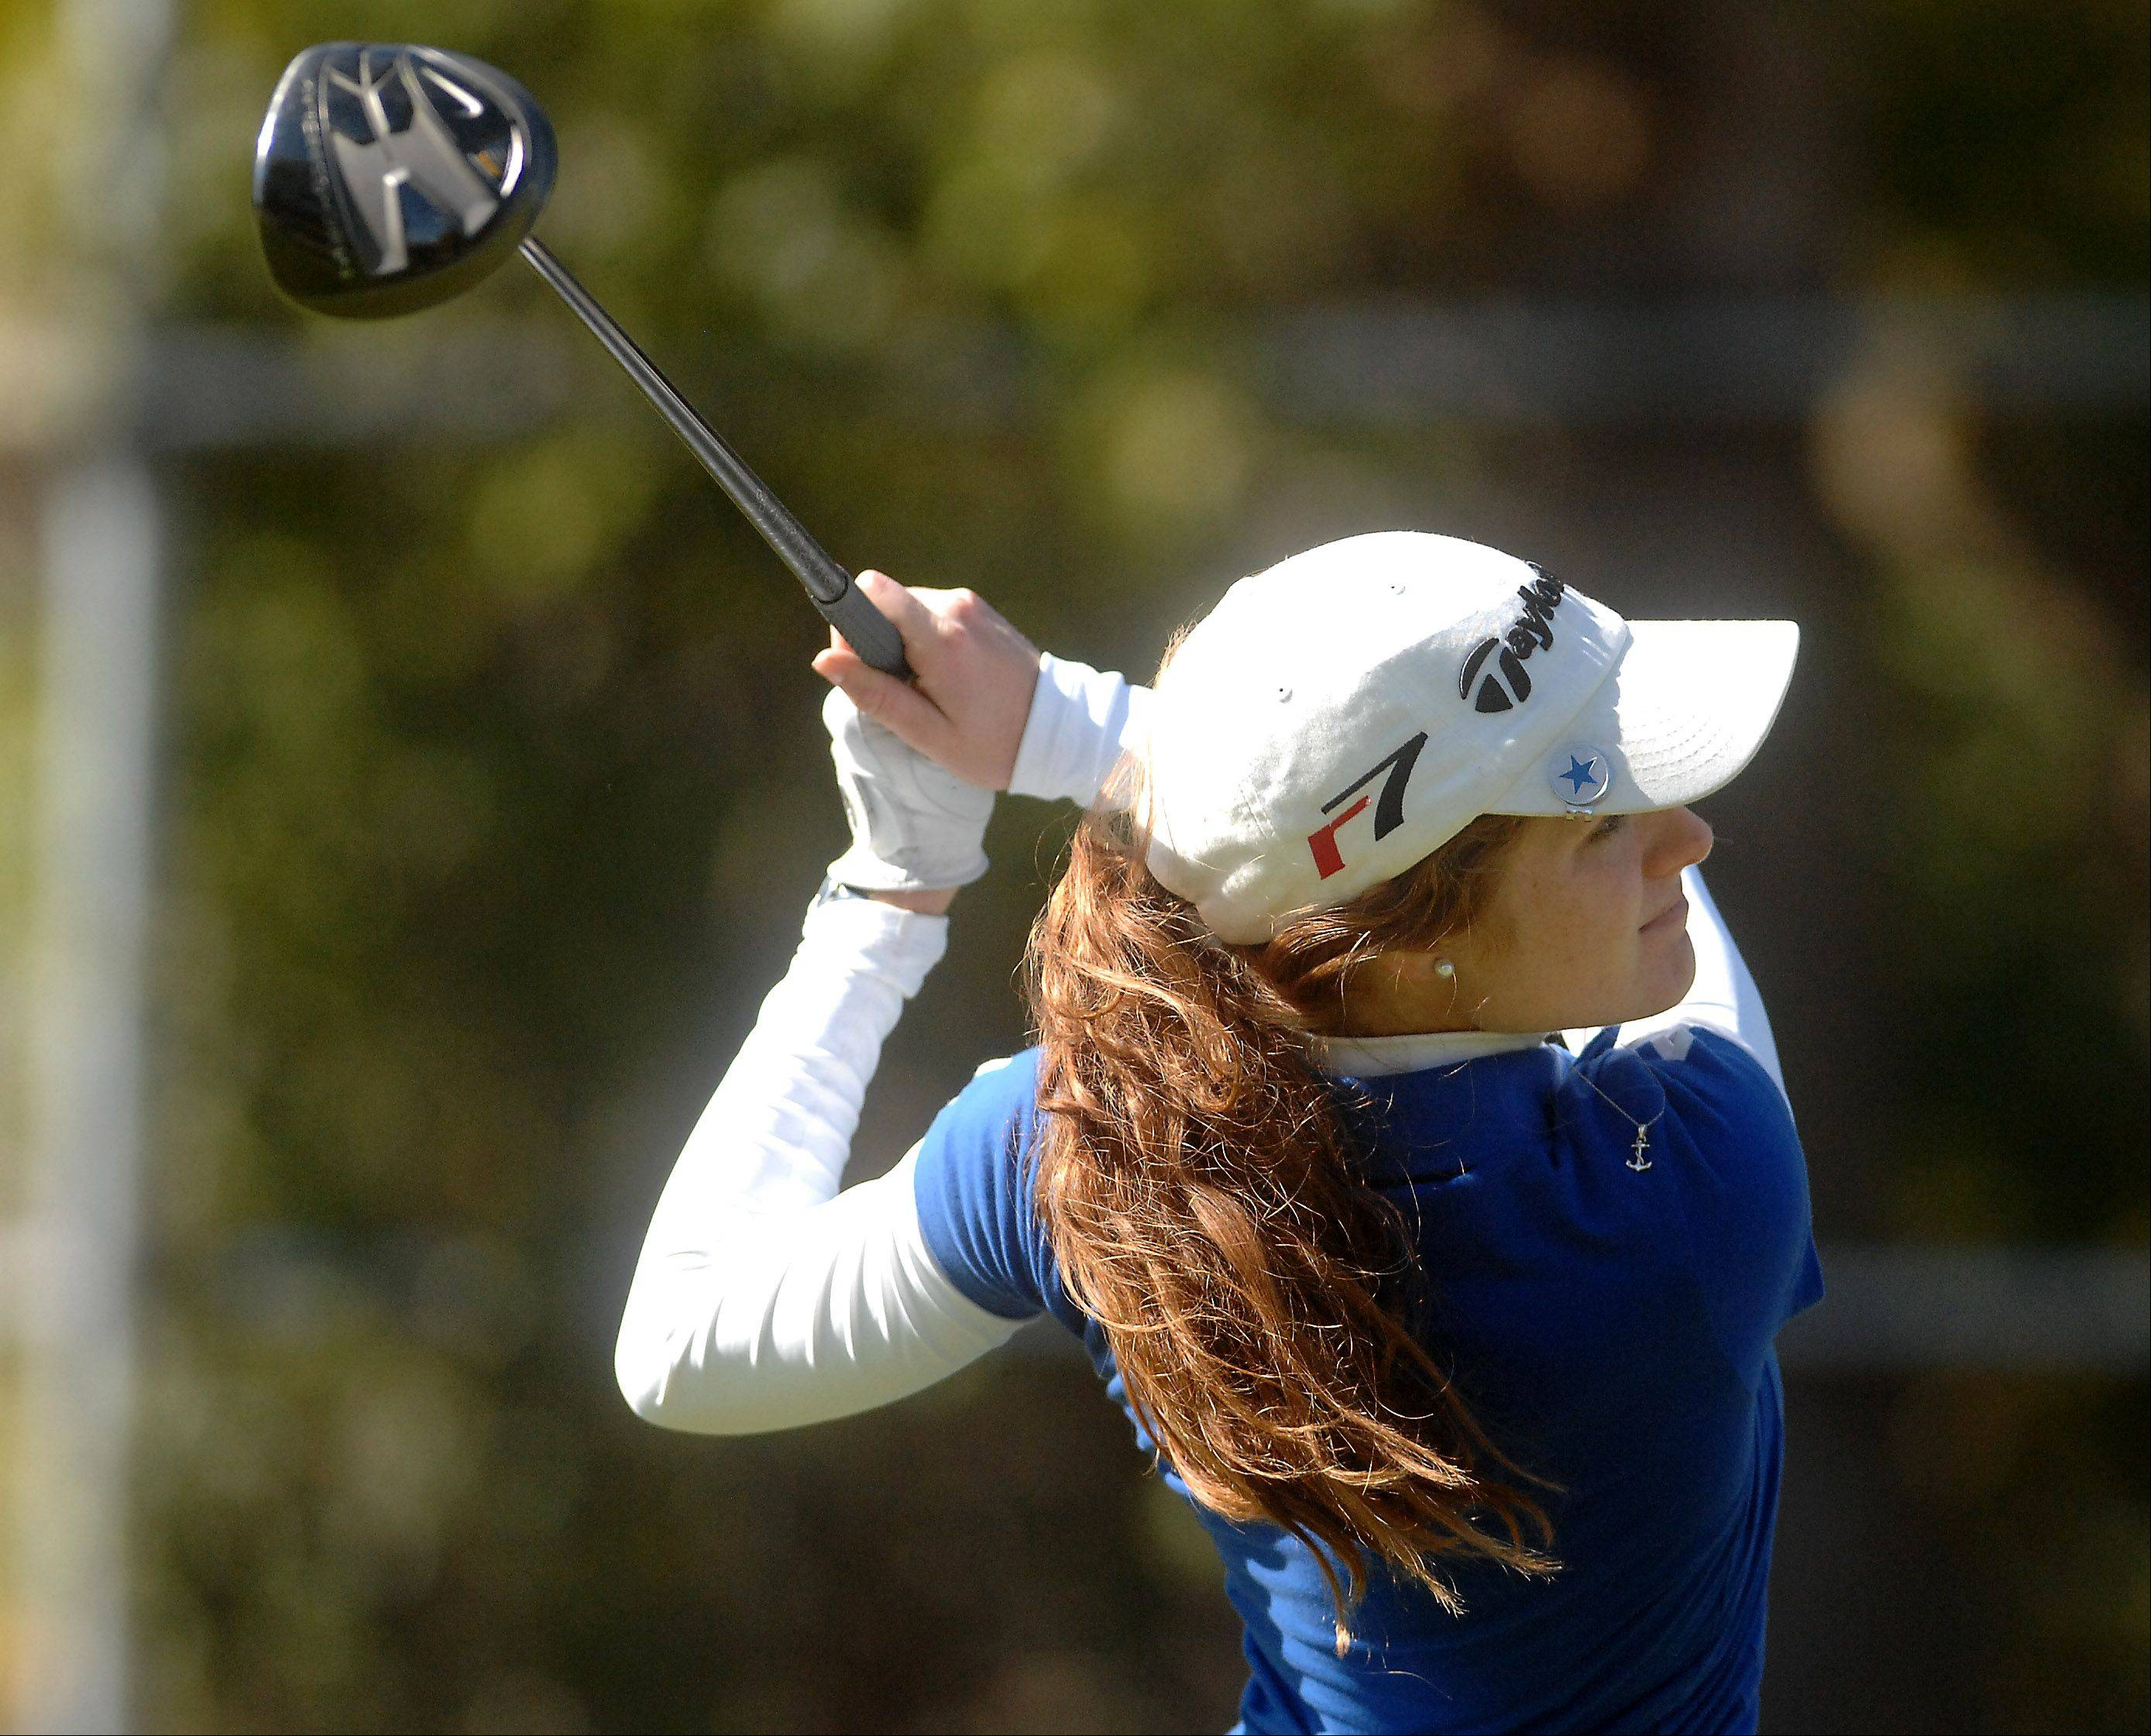 St. Charles North's Jessica Grill tees off on 18 during Monday's Burlington Central sectional girls golf action at Randall Oaks in West Dundee.